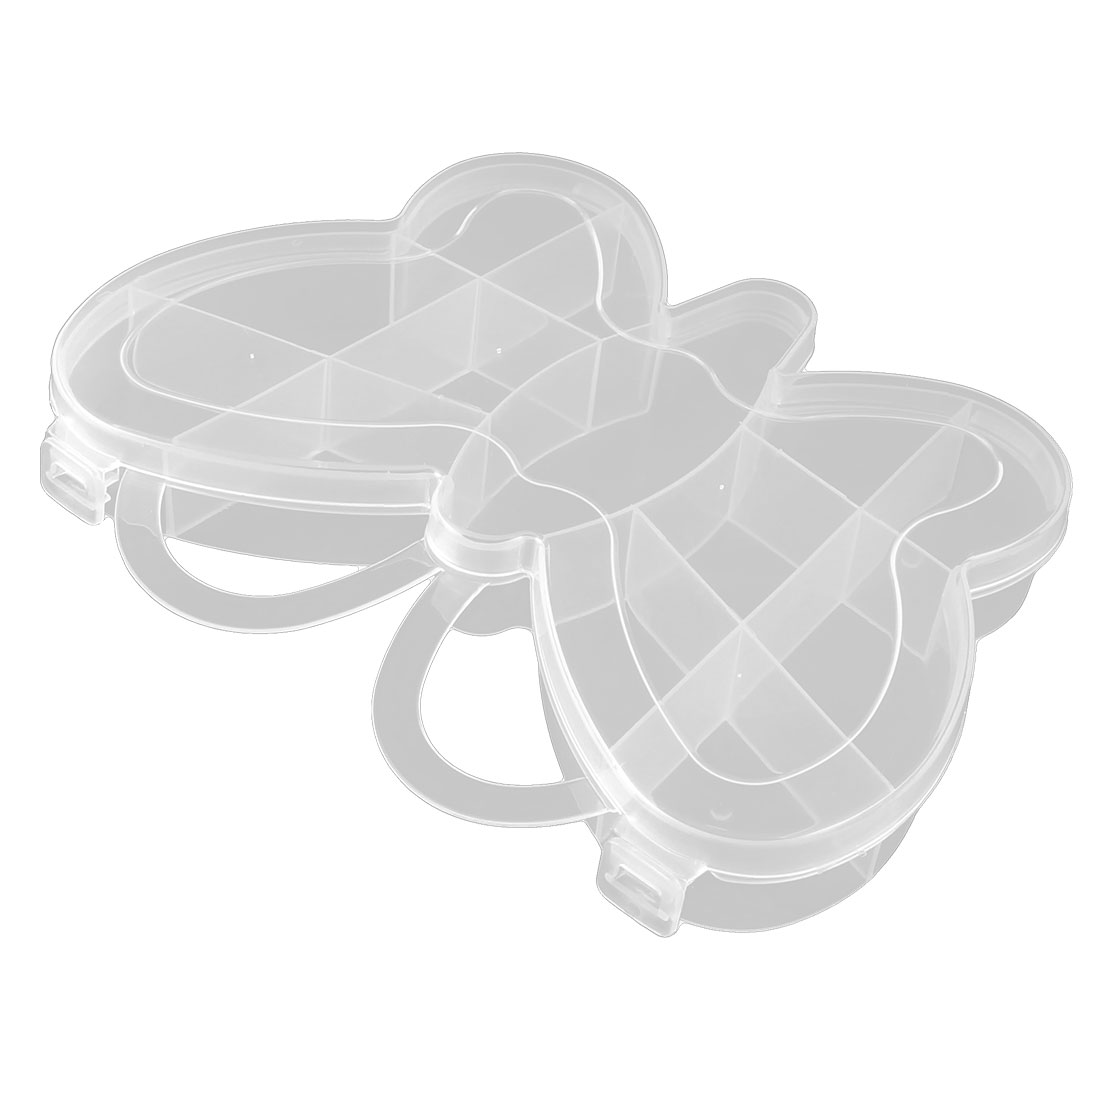 Household Plastic Butterfly Design 13 Compartments Container Storage Case Clear